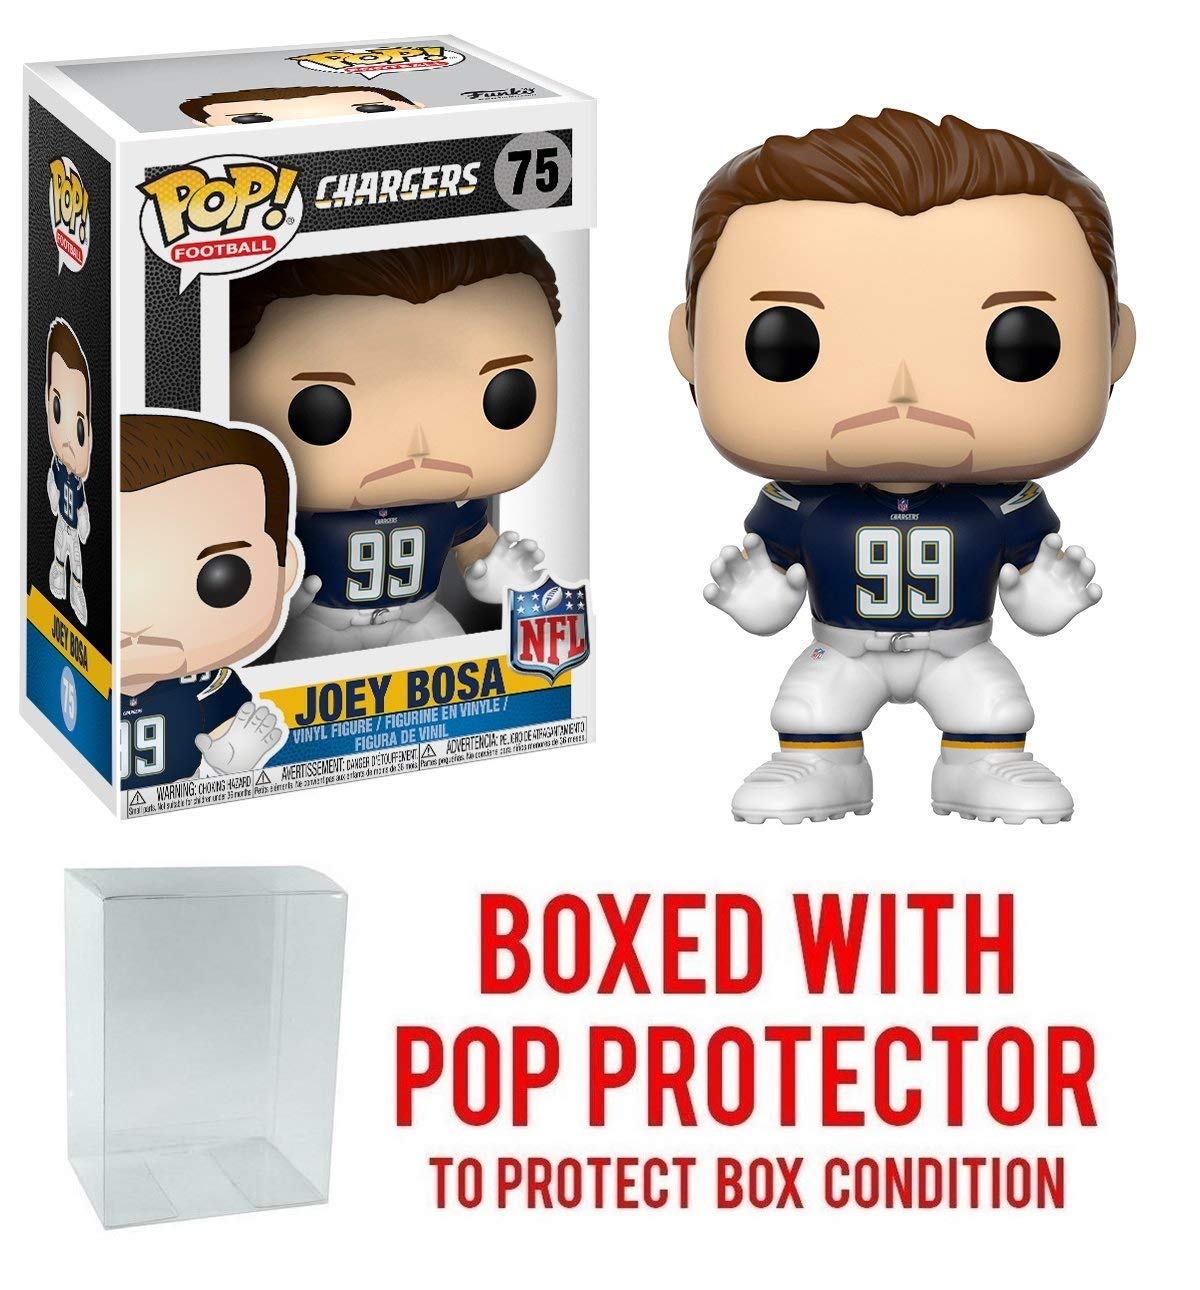 Pop Joey Bosa LA Chargers Vinyl Figure NFL Bundled with Pop Protector